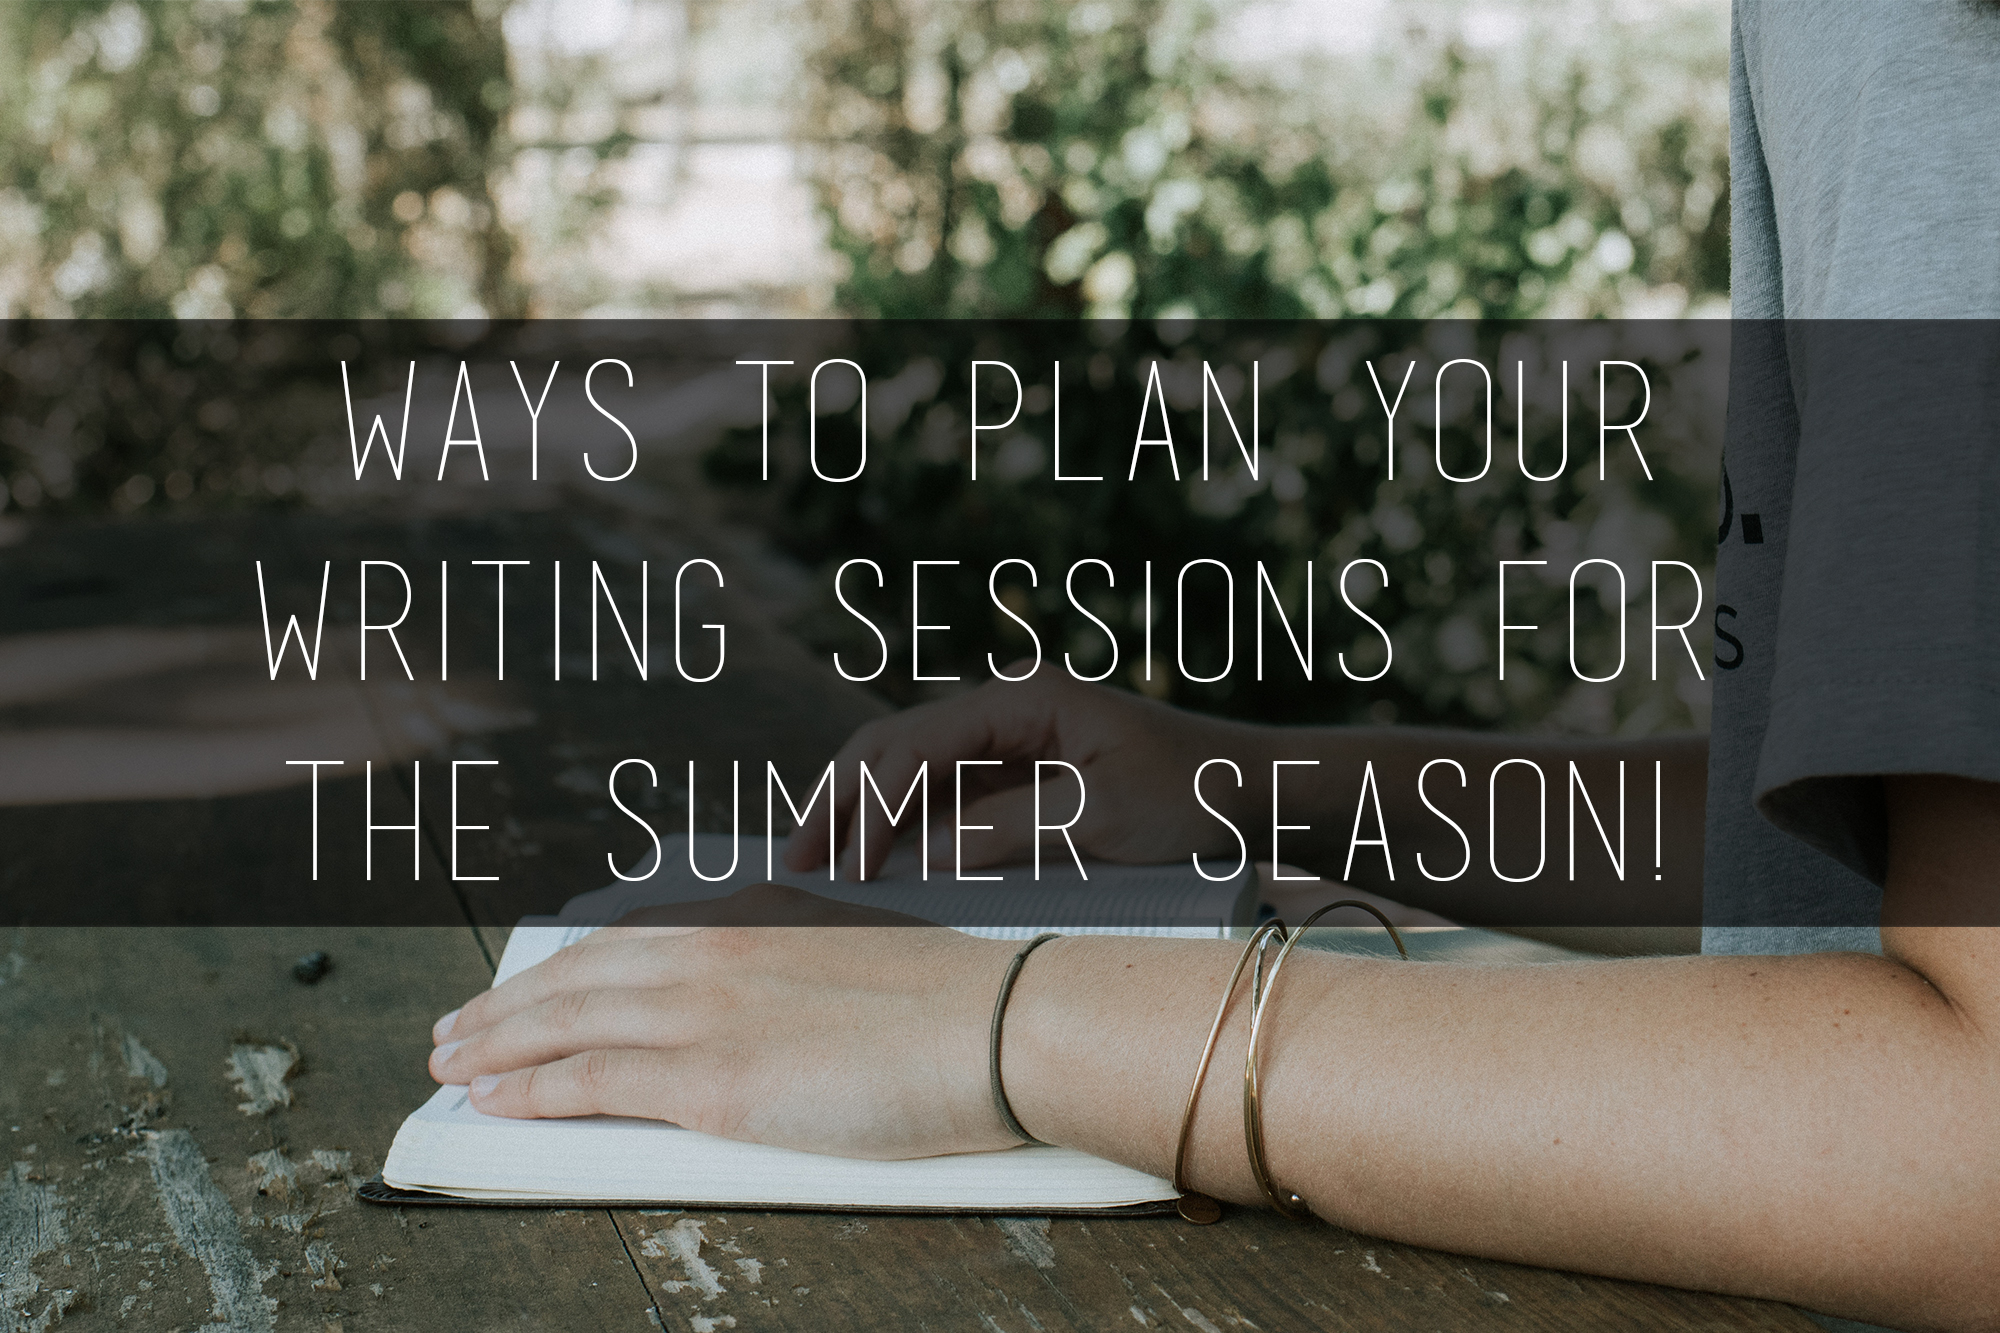 tips for creating writing time during the summer